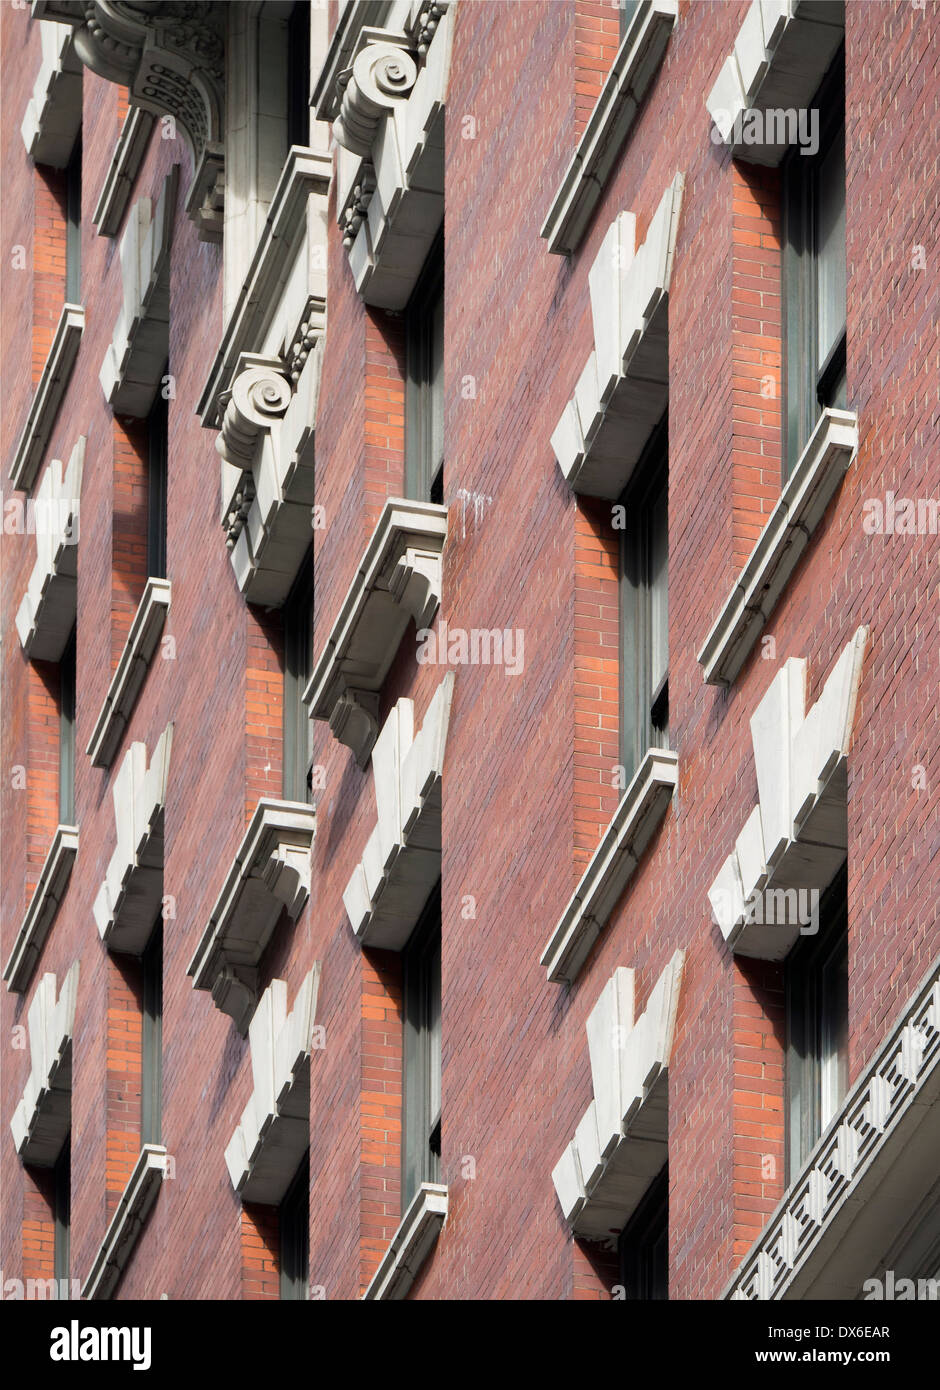 Detail of building facade, Fifth Avenue New York - Stock Image